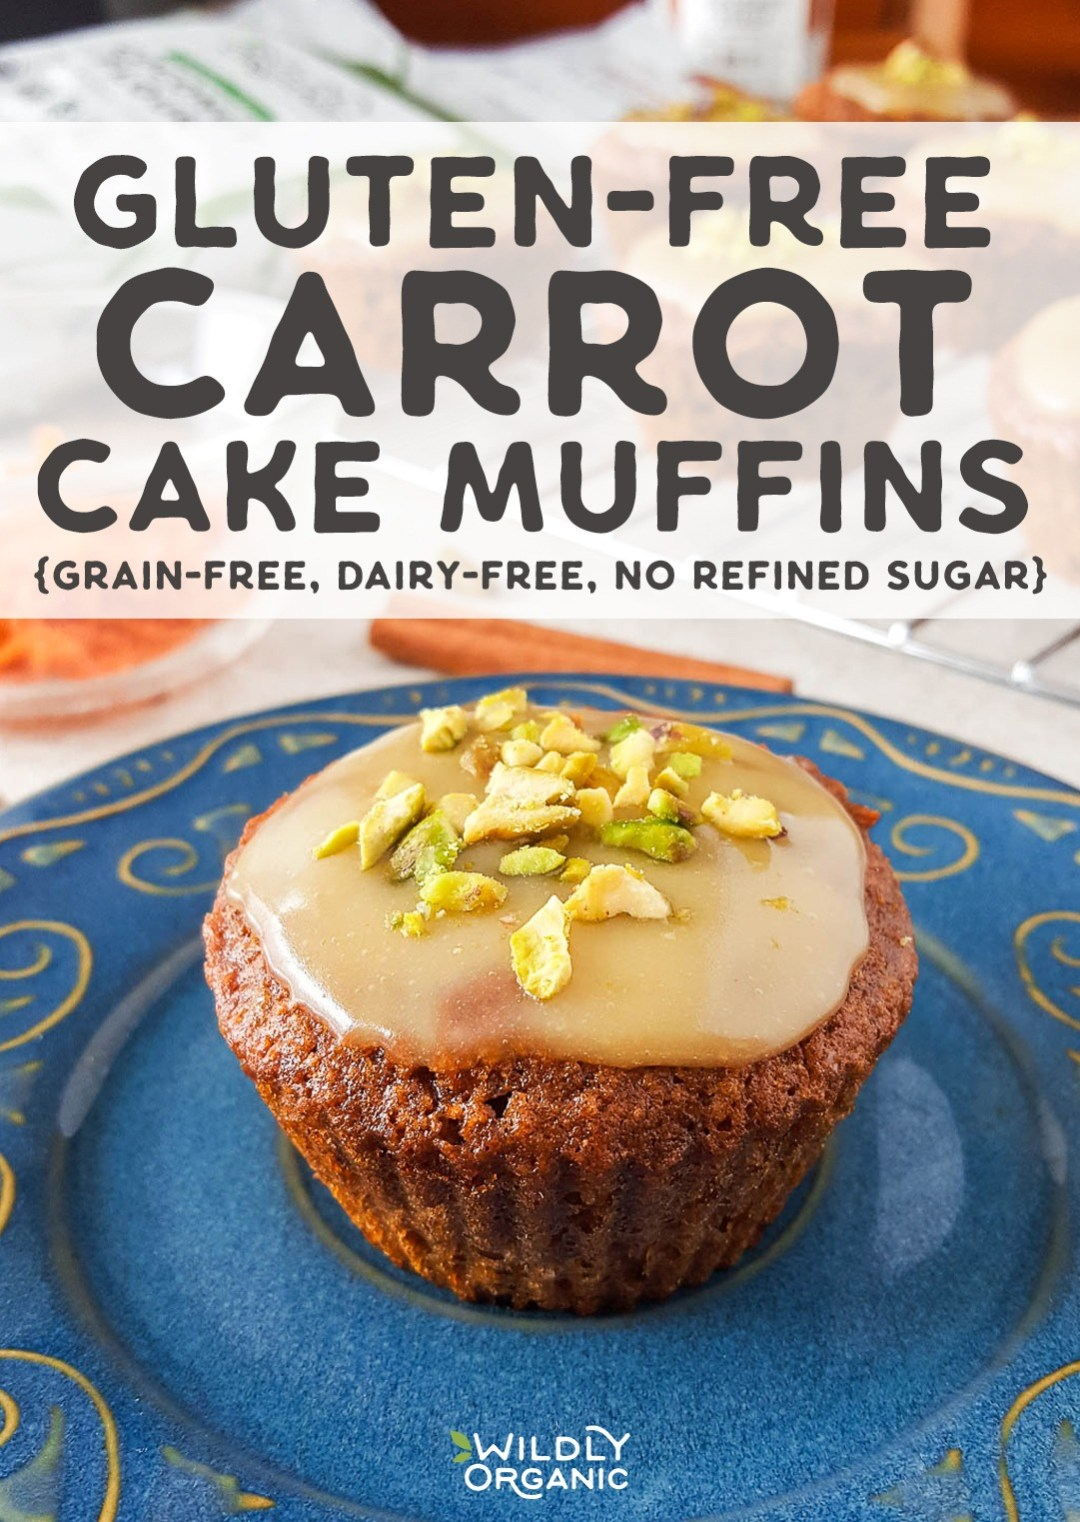 Photo of a gluten-free carrot cake muffin on a blue plate topped with a white chocolate glaze and crushed pistachios.